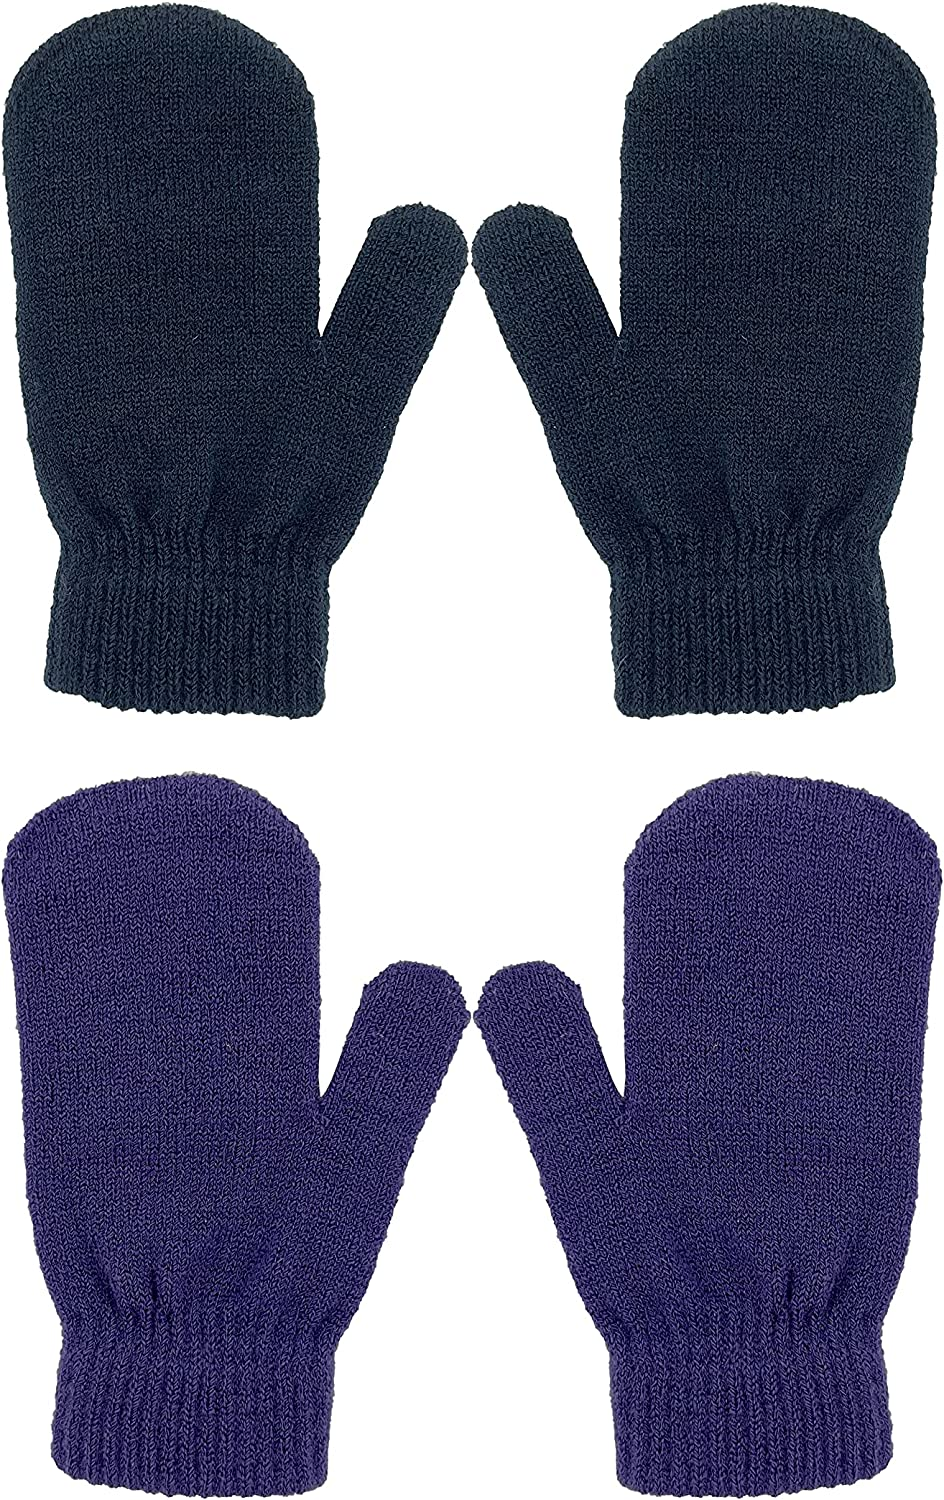 Choice LARTIGUE 2 Pairs Kids New popularity Winter Gloves Warm Mi Fingers Full Knitted